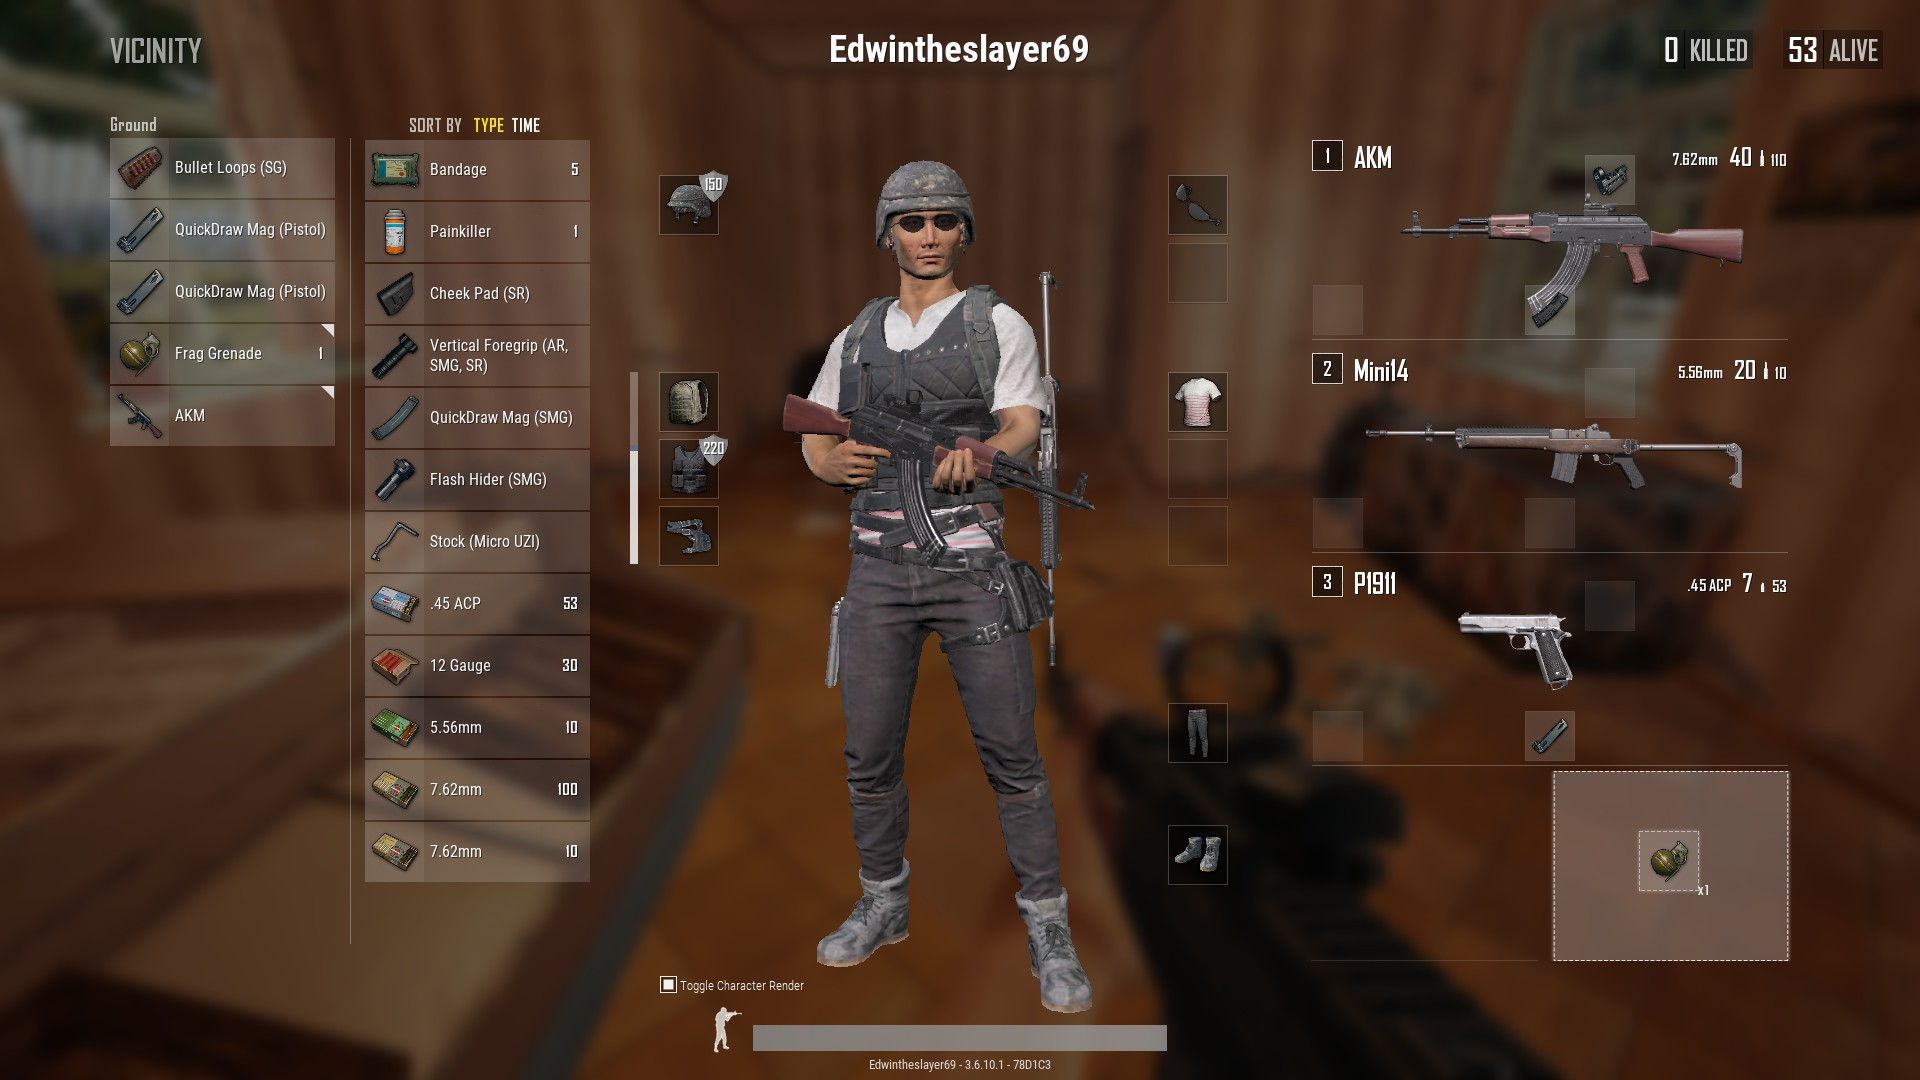 Cuisine Royale Guide Pubg How To Equip Guns Attachments And Grenades Guide Metabomb